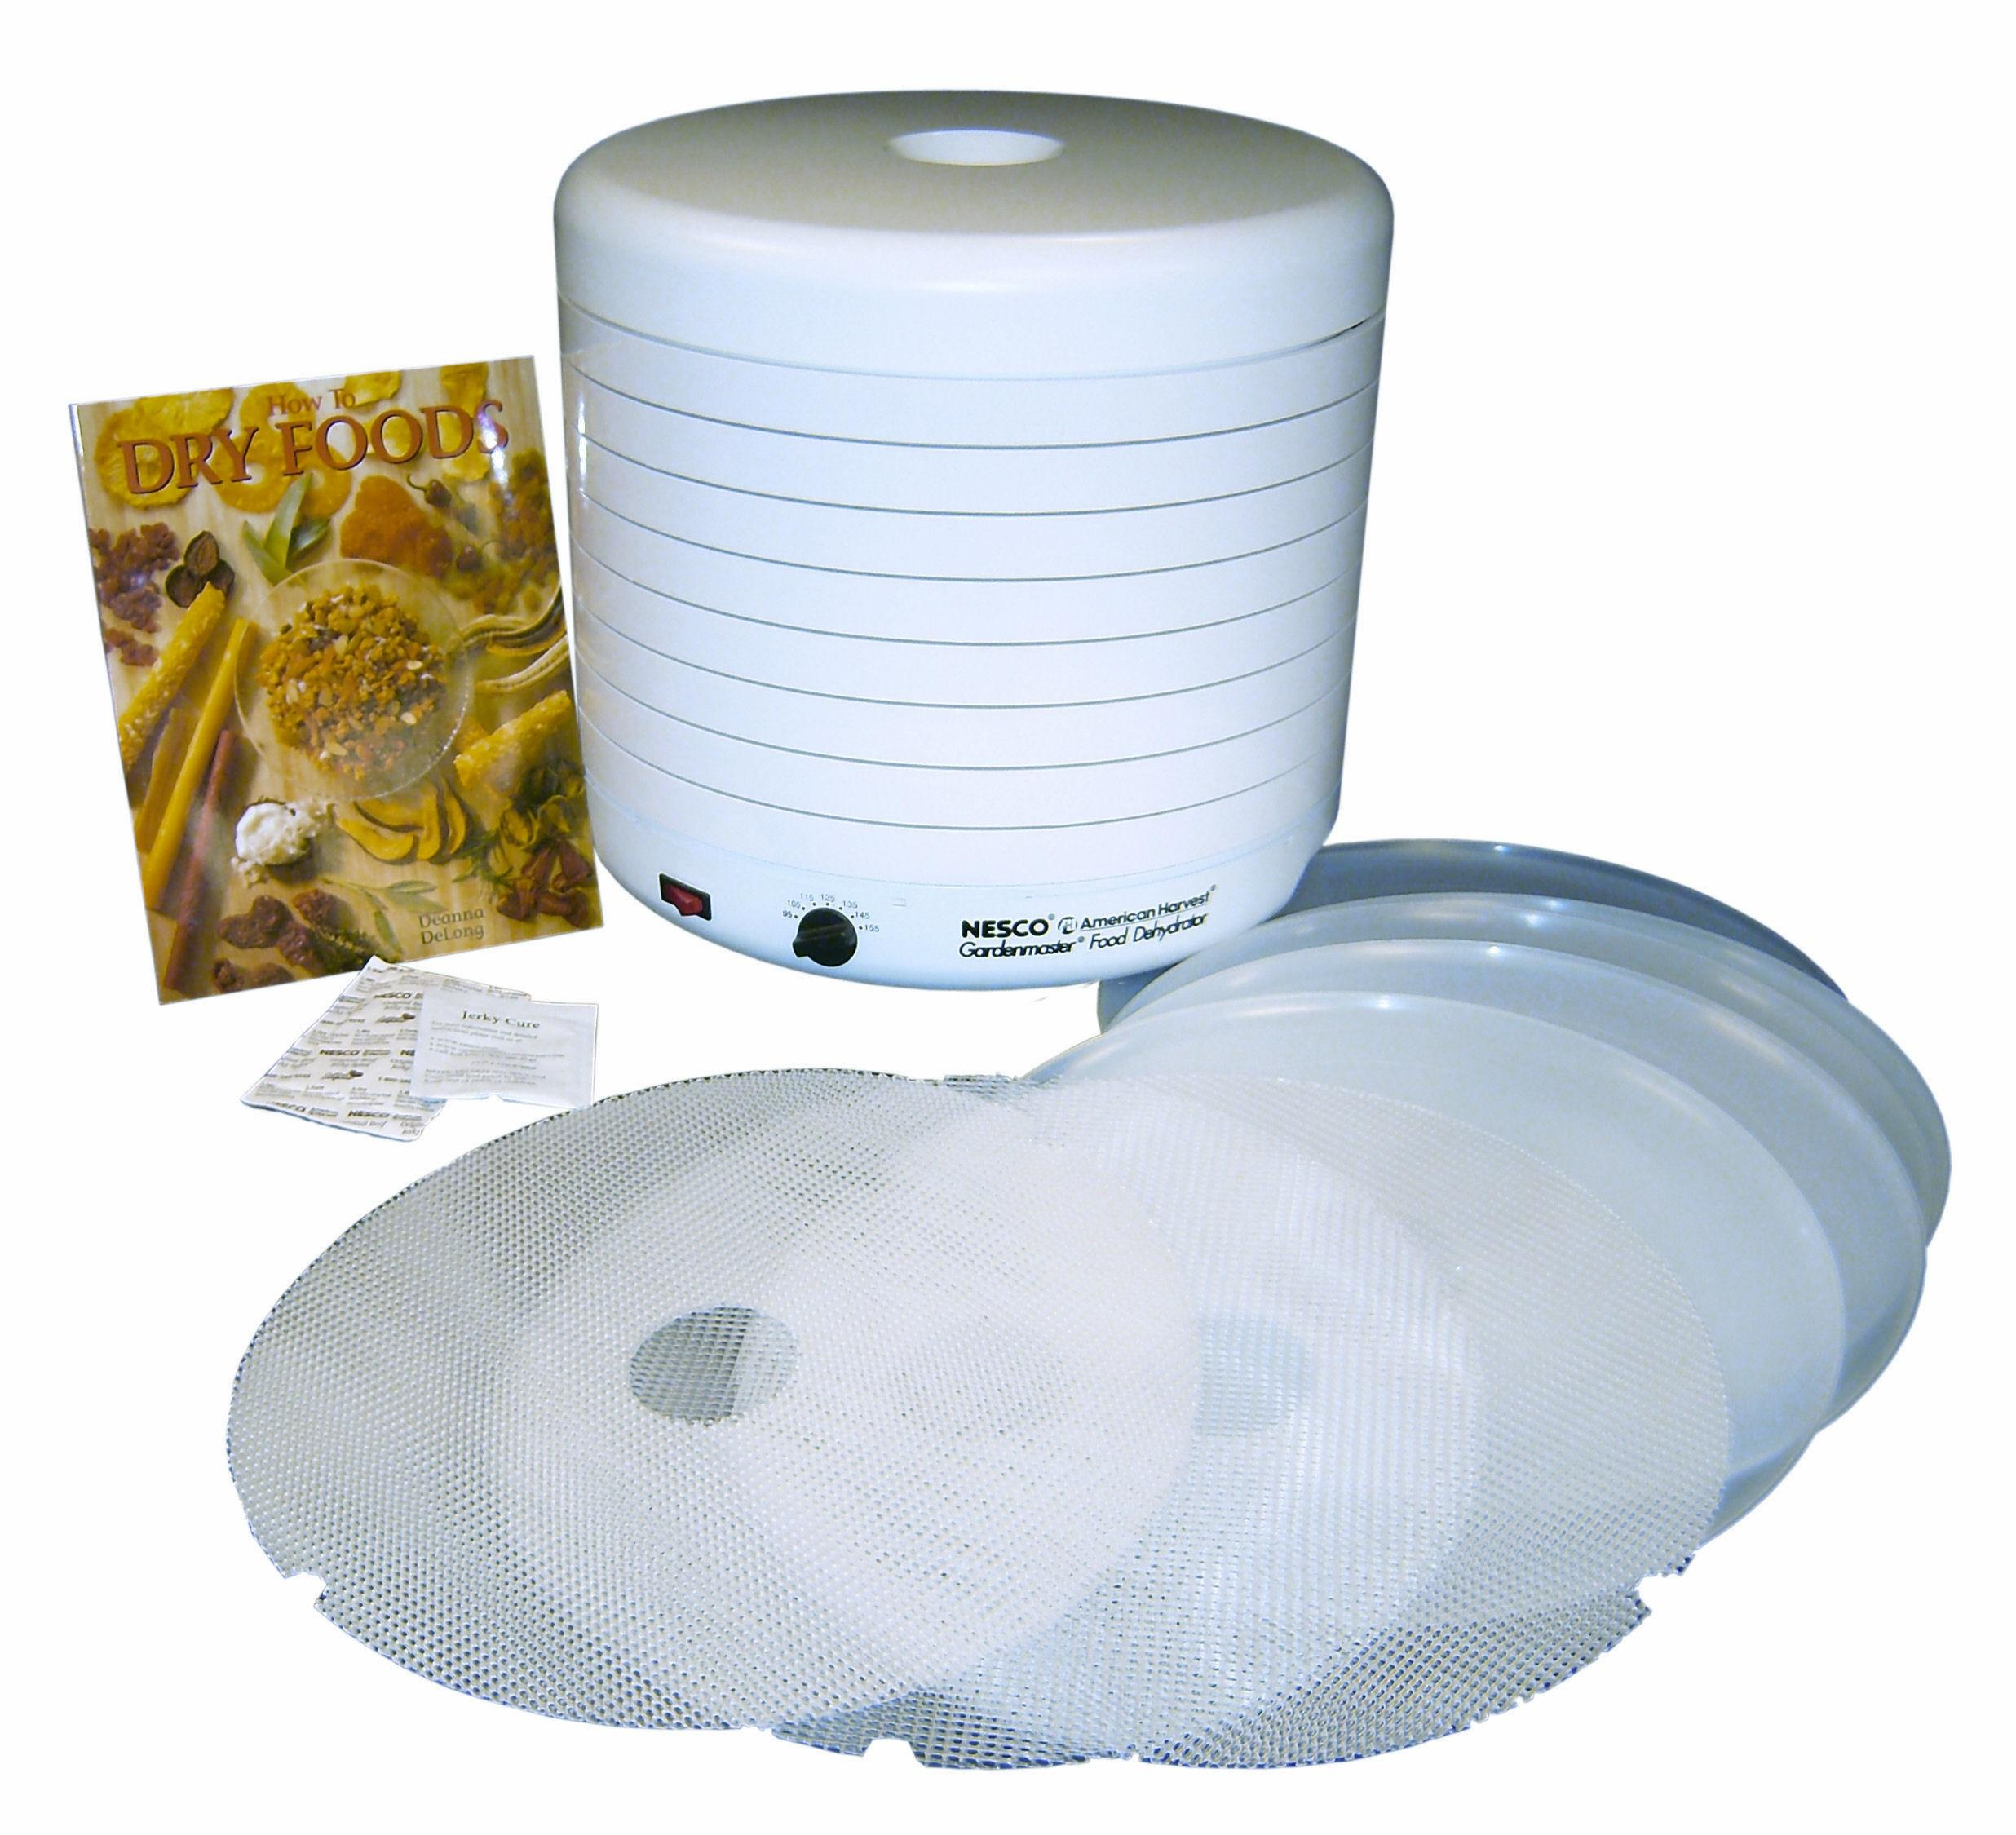 Nesco Gardenmaster Food Dehydrator fd 1018 a review